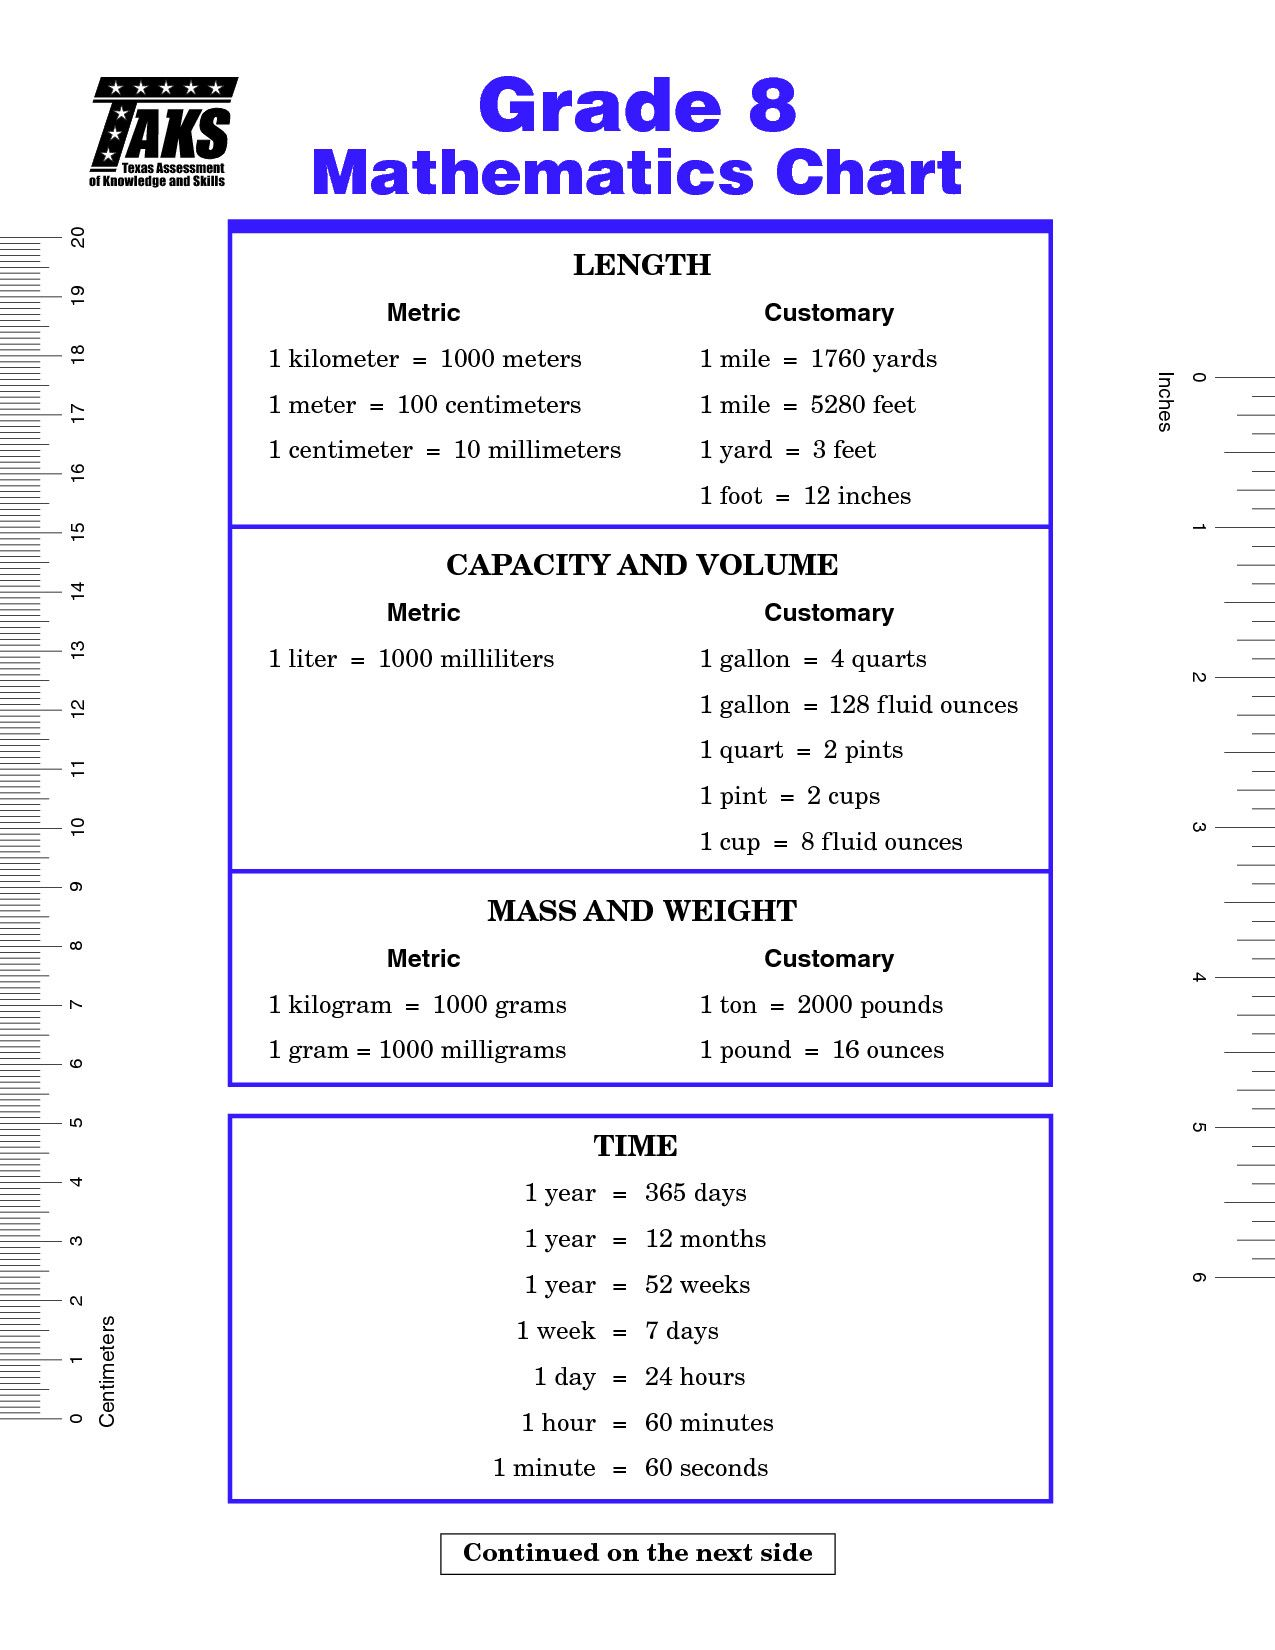 small resolution of 5 Free Math Worksheets Second Grade 2 Measurement Metric Units Mass Kg Gm 8  8th g…   2nd grade math worksheets